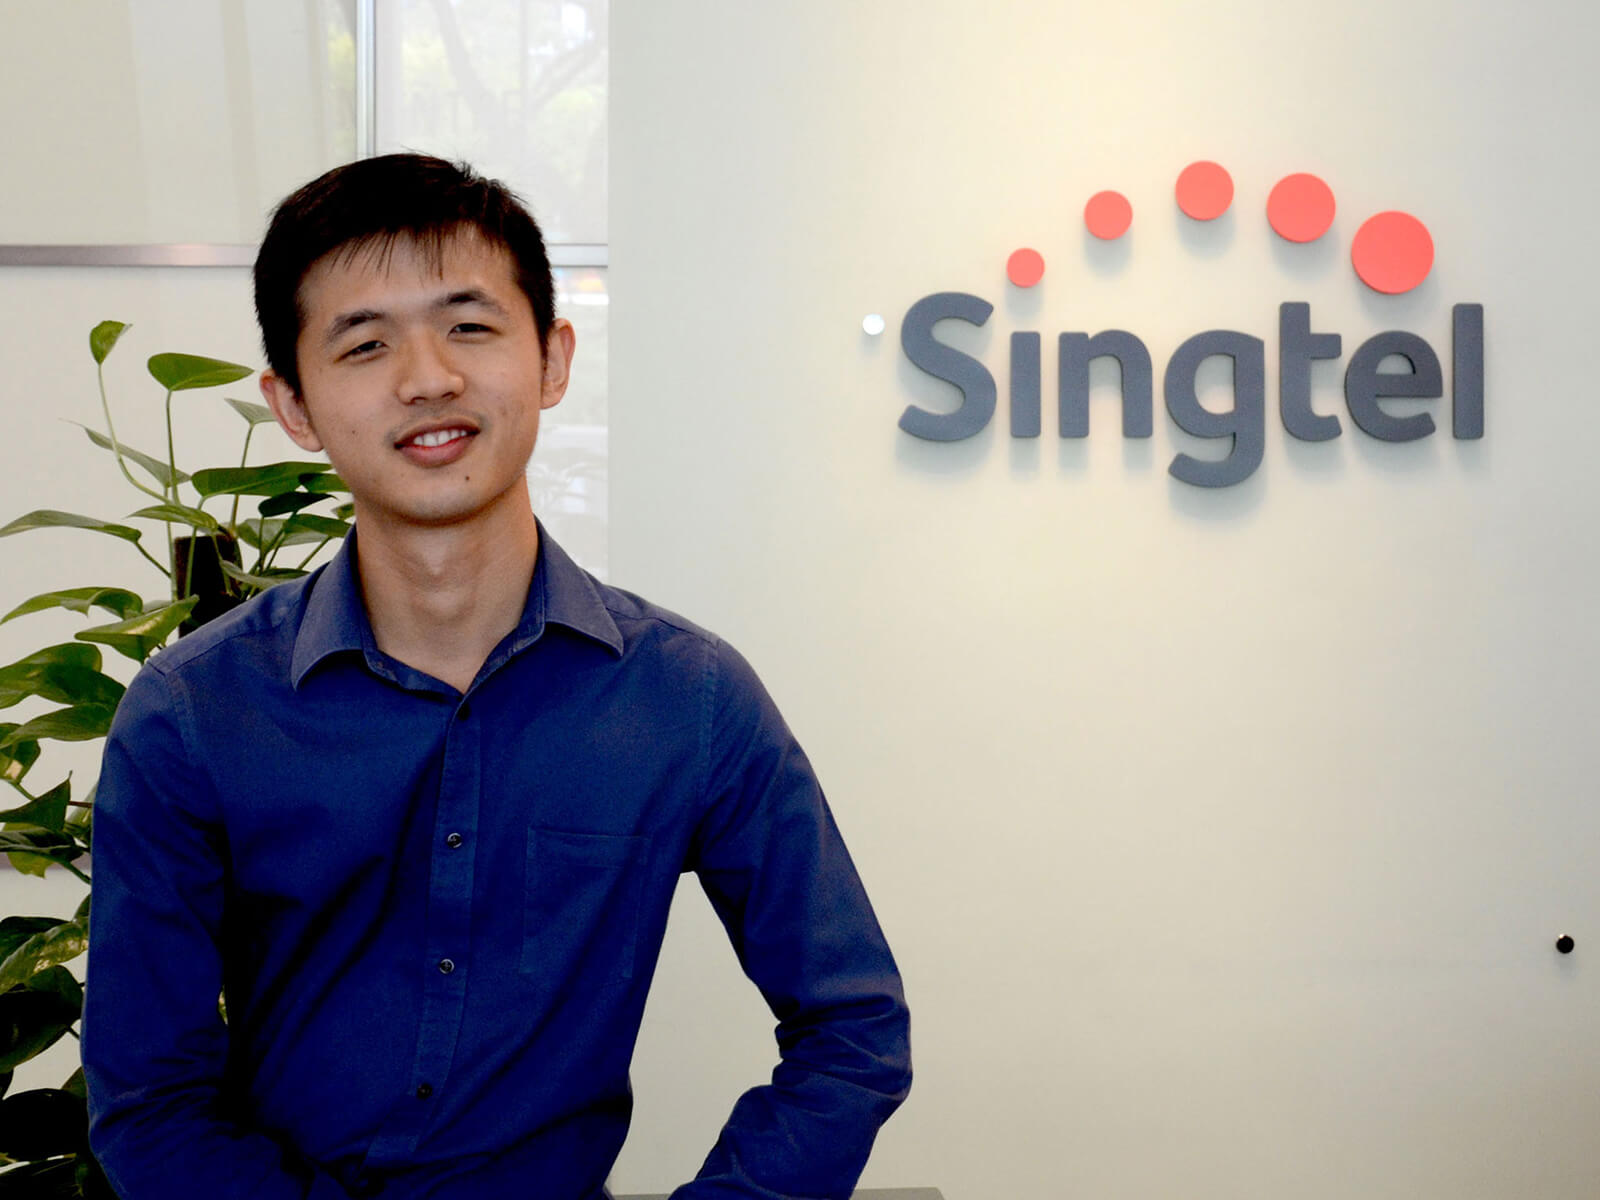 DigiPen (Singapore) BA in Game Design alumnus Daryl Bong poses in front of the Singtel logo